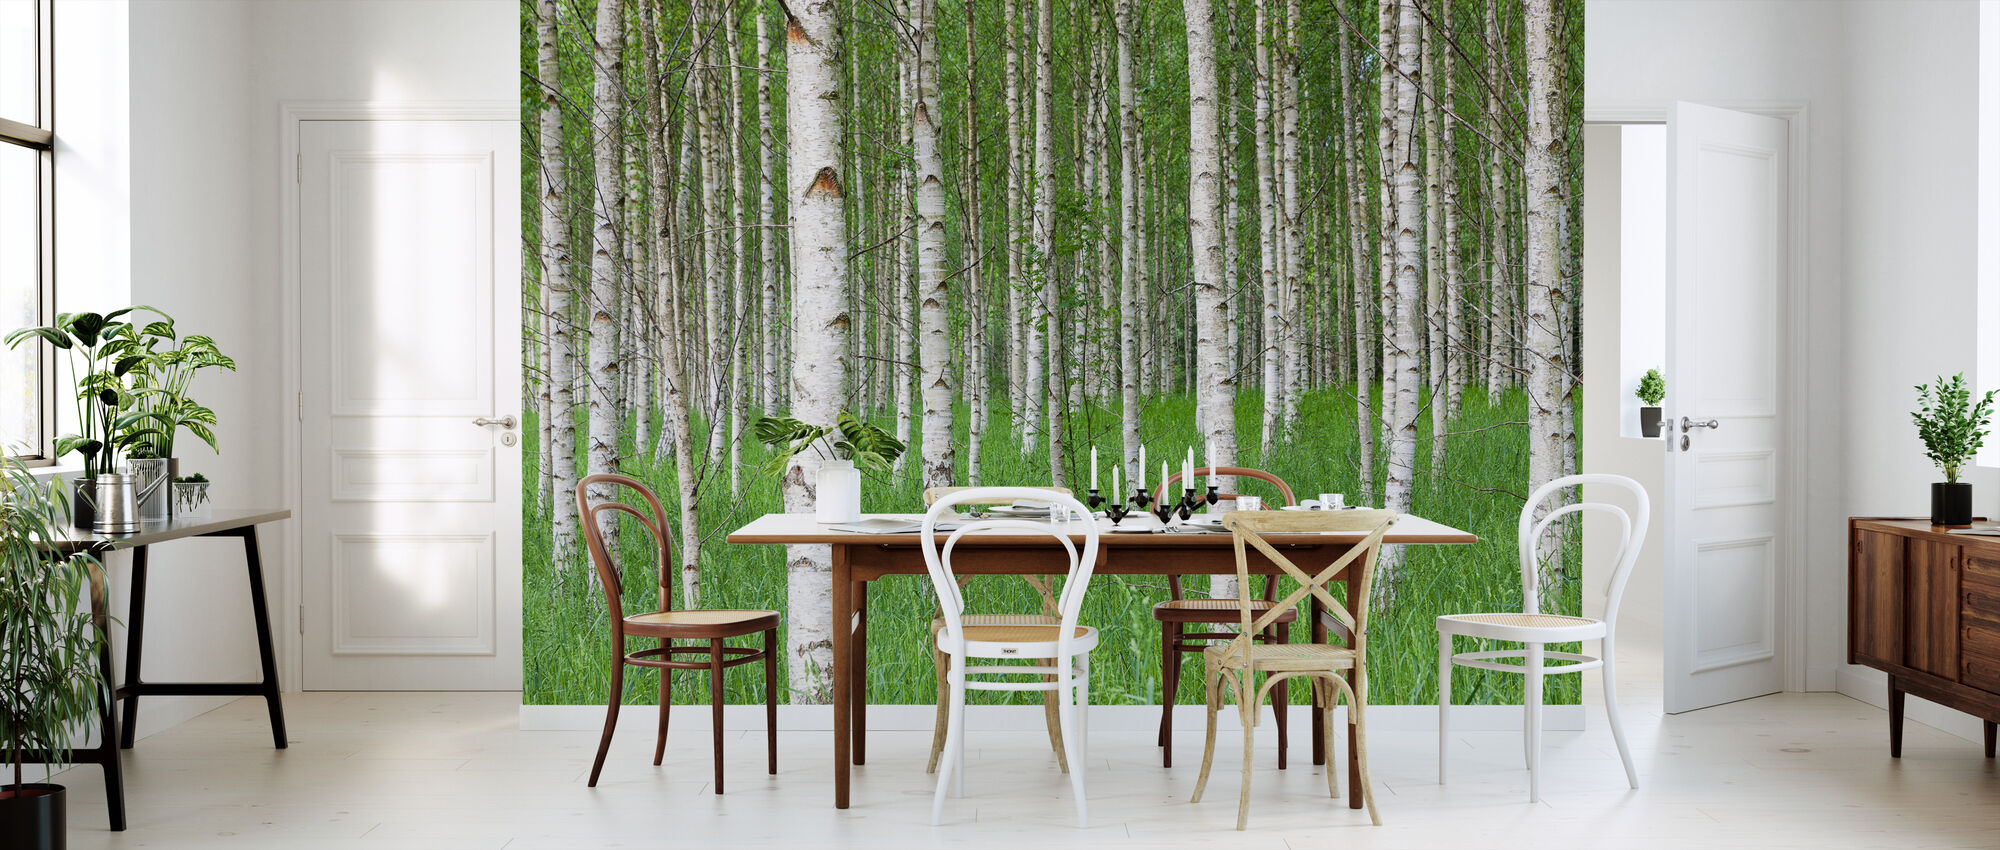 Birch Forest & Green Grass - Wallpaper - Kitchen